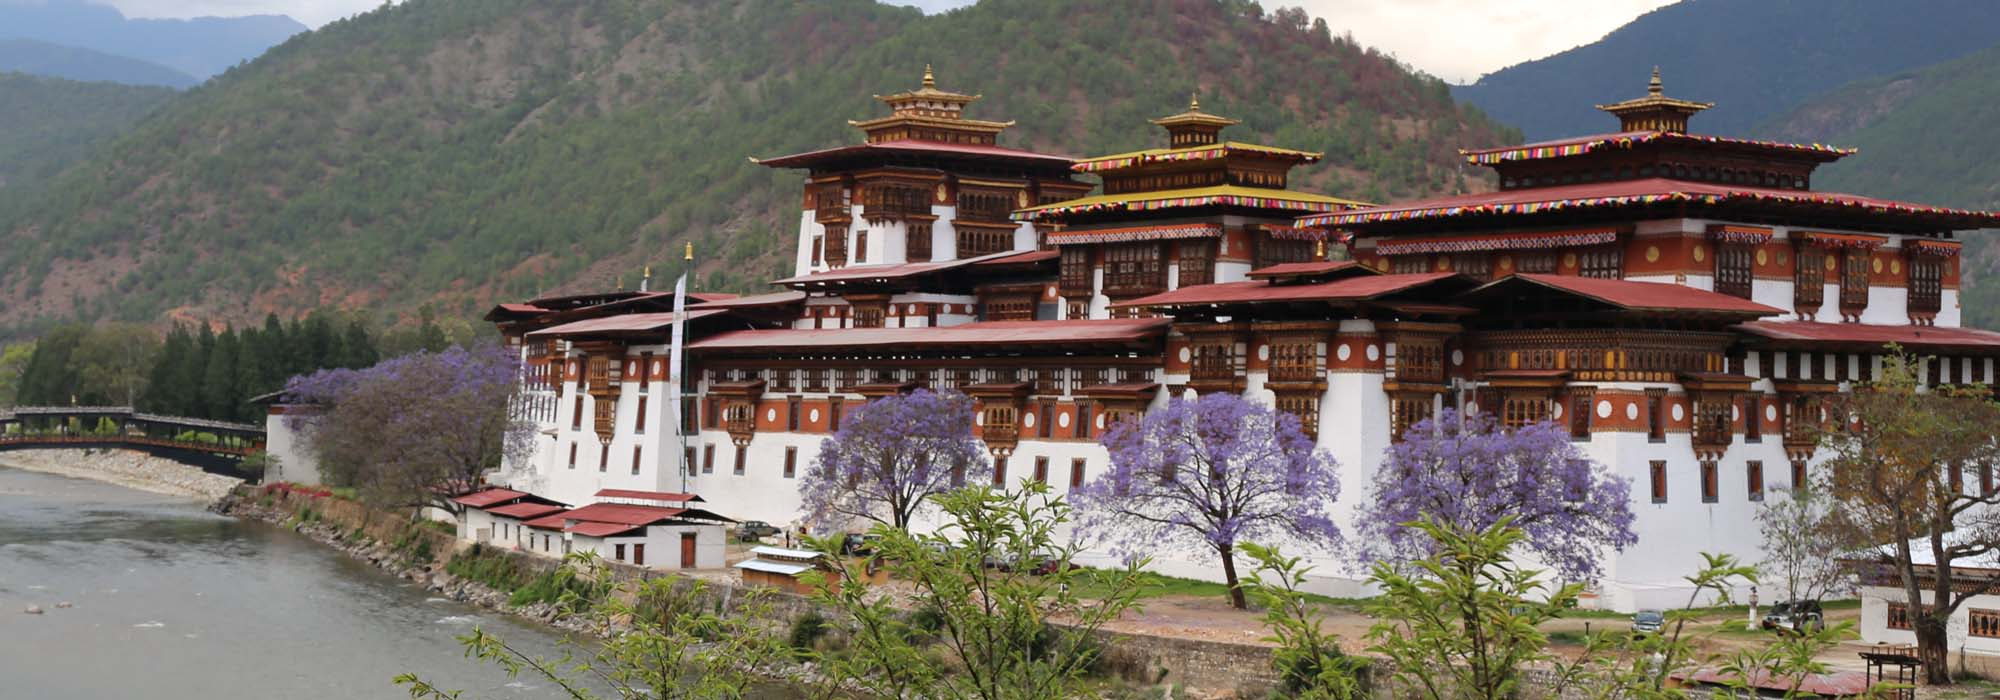 Majestic Bhutan 5 Nights 6 Days